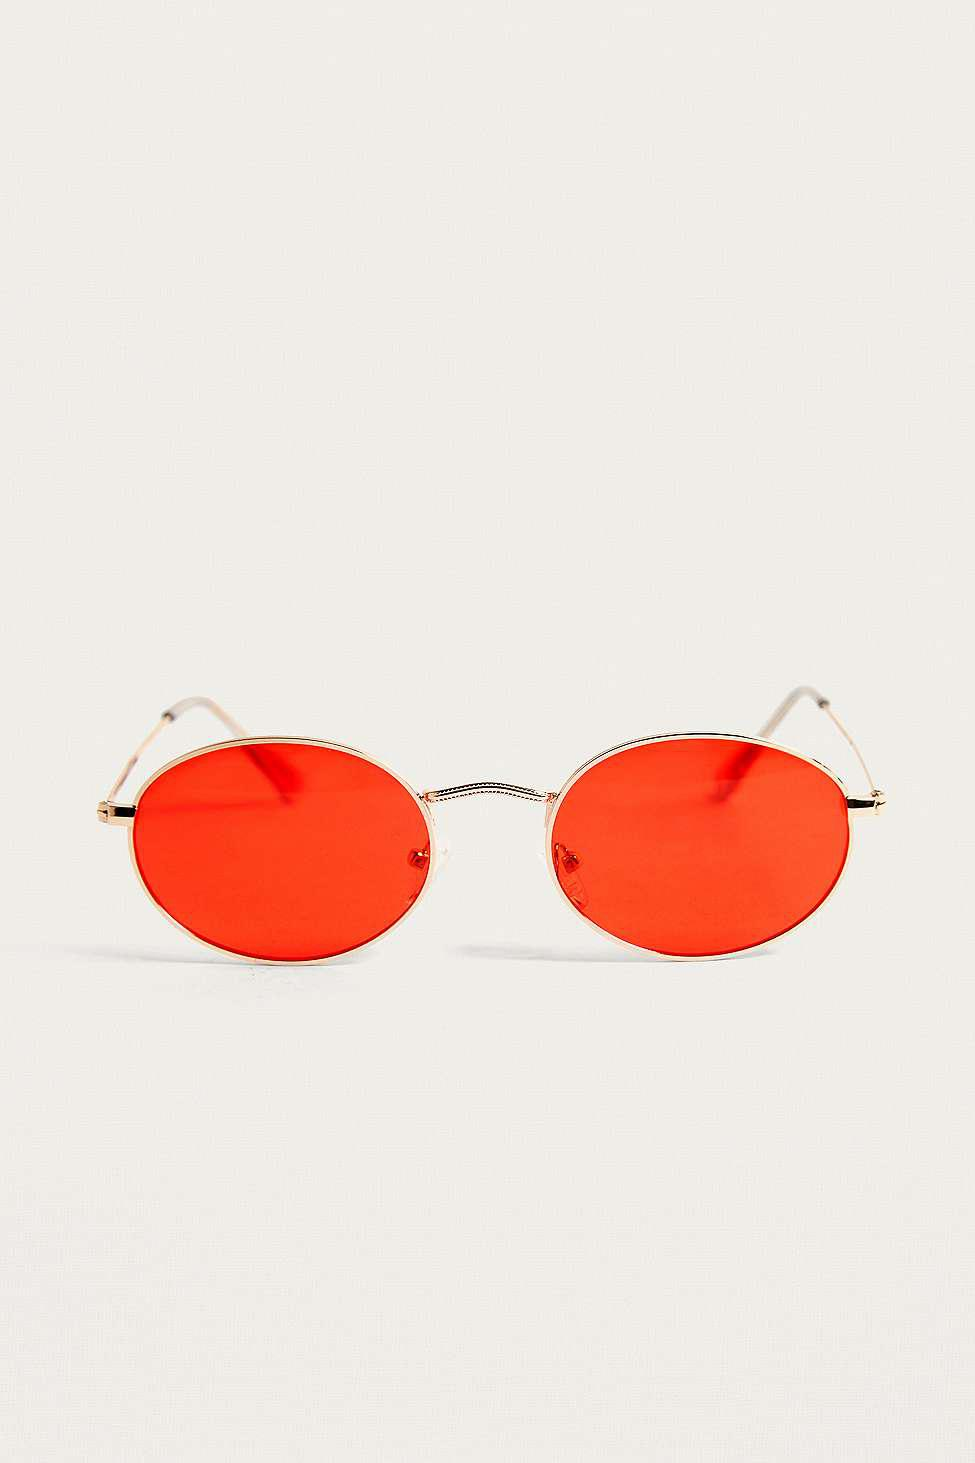 Urban Outfitters Uo 'samson' Red Sunglasses - Mens All for Men